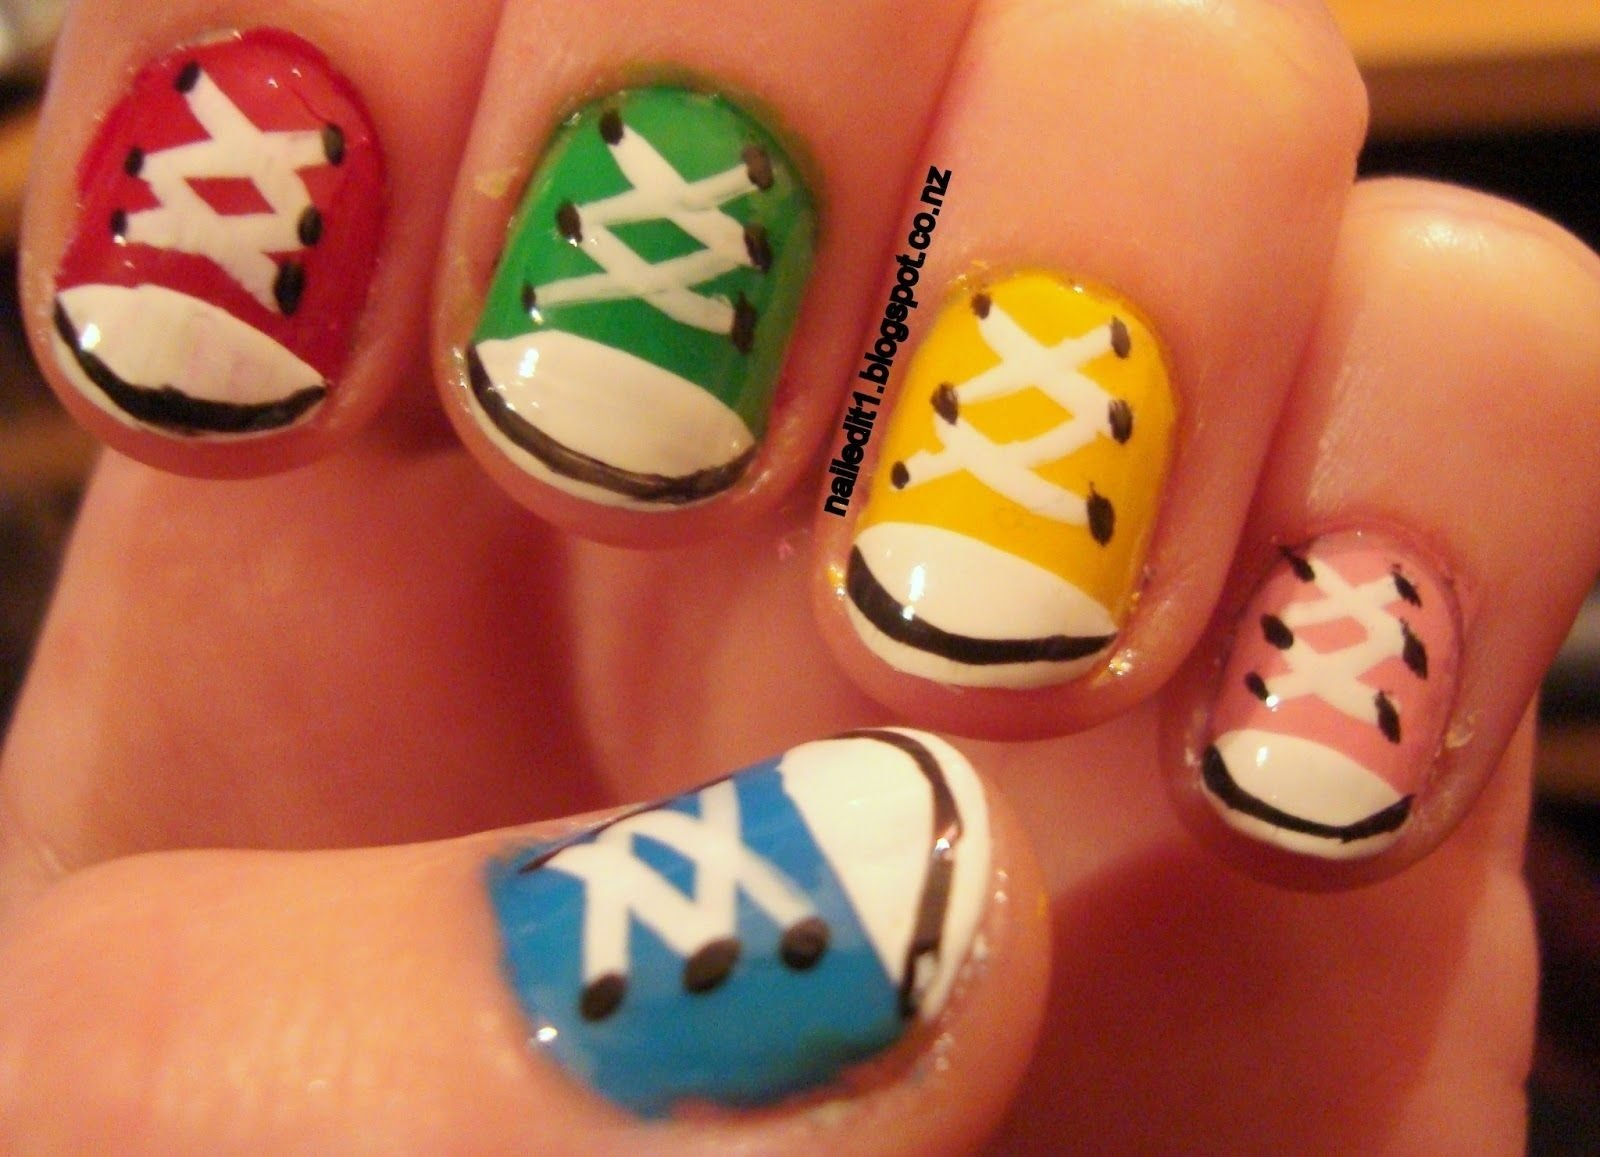 10 Attractive Easy Nail Ideas For Short Nails simple nail designs for short nails this is totally me hate 3 2021